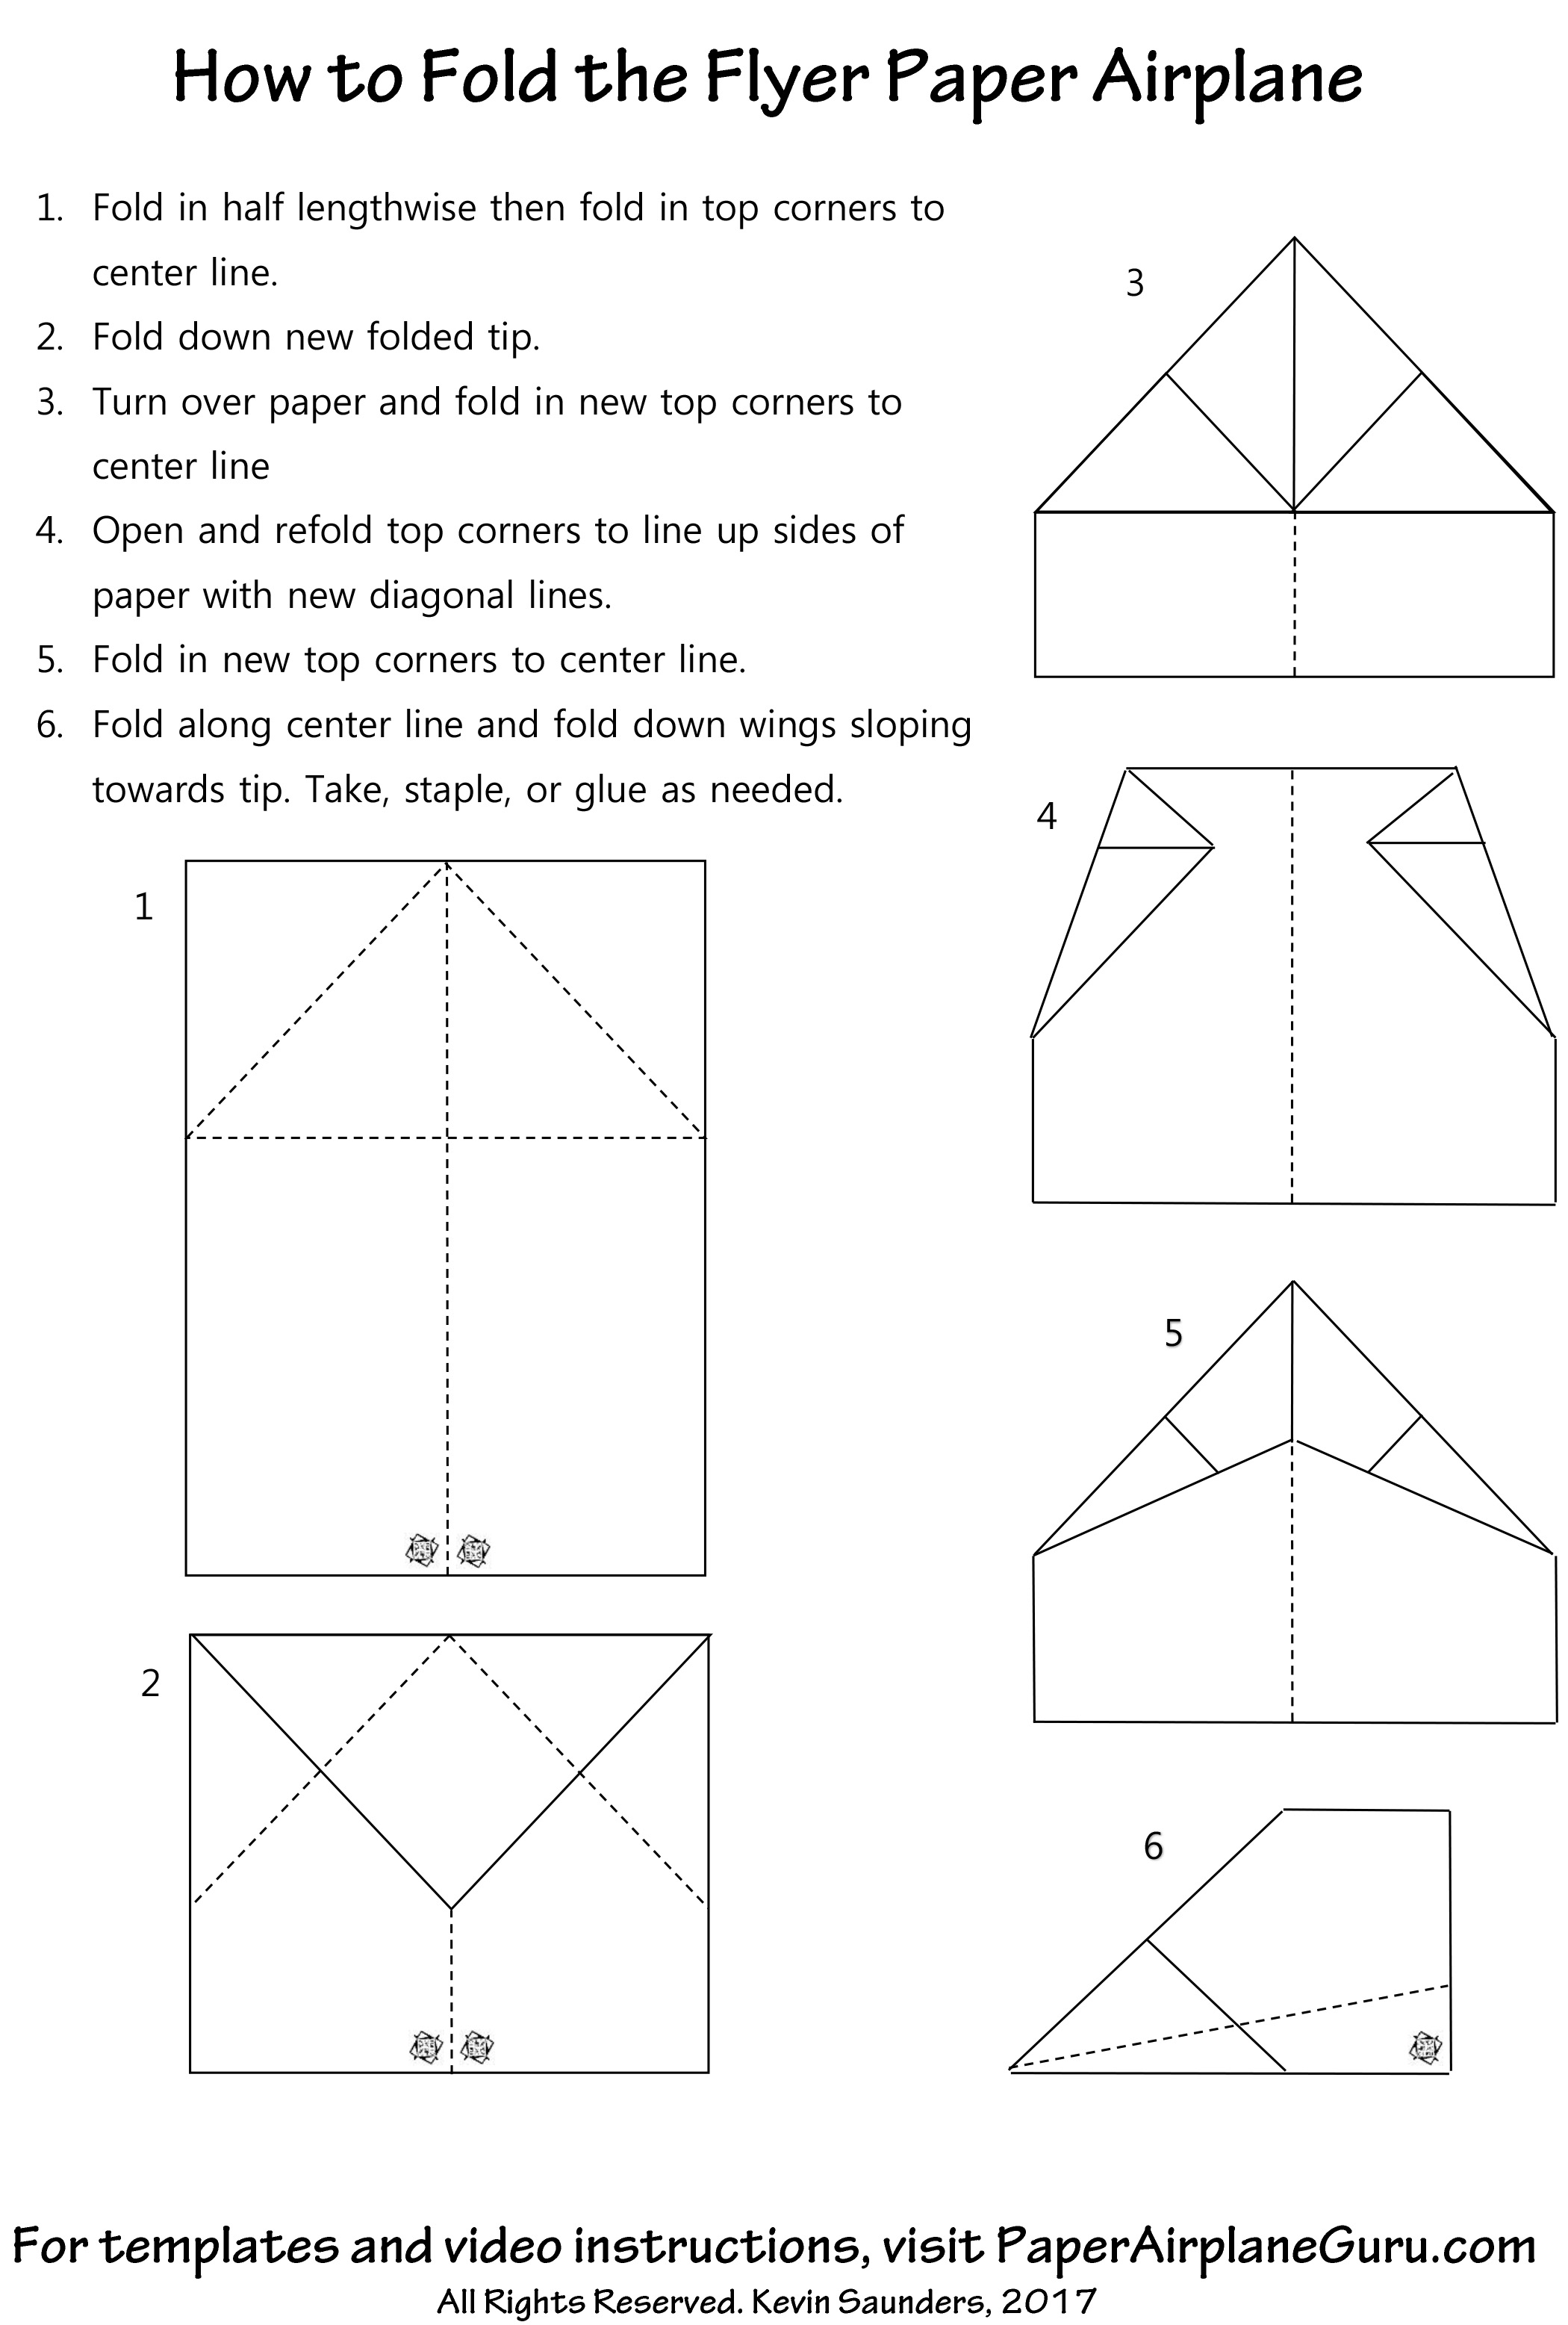 Flyer Paper Airplane Instructions Jpg Pdf Video